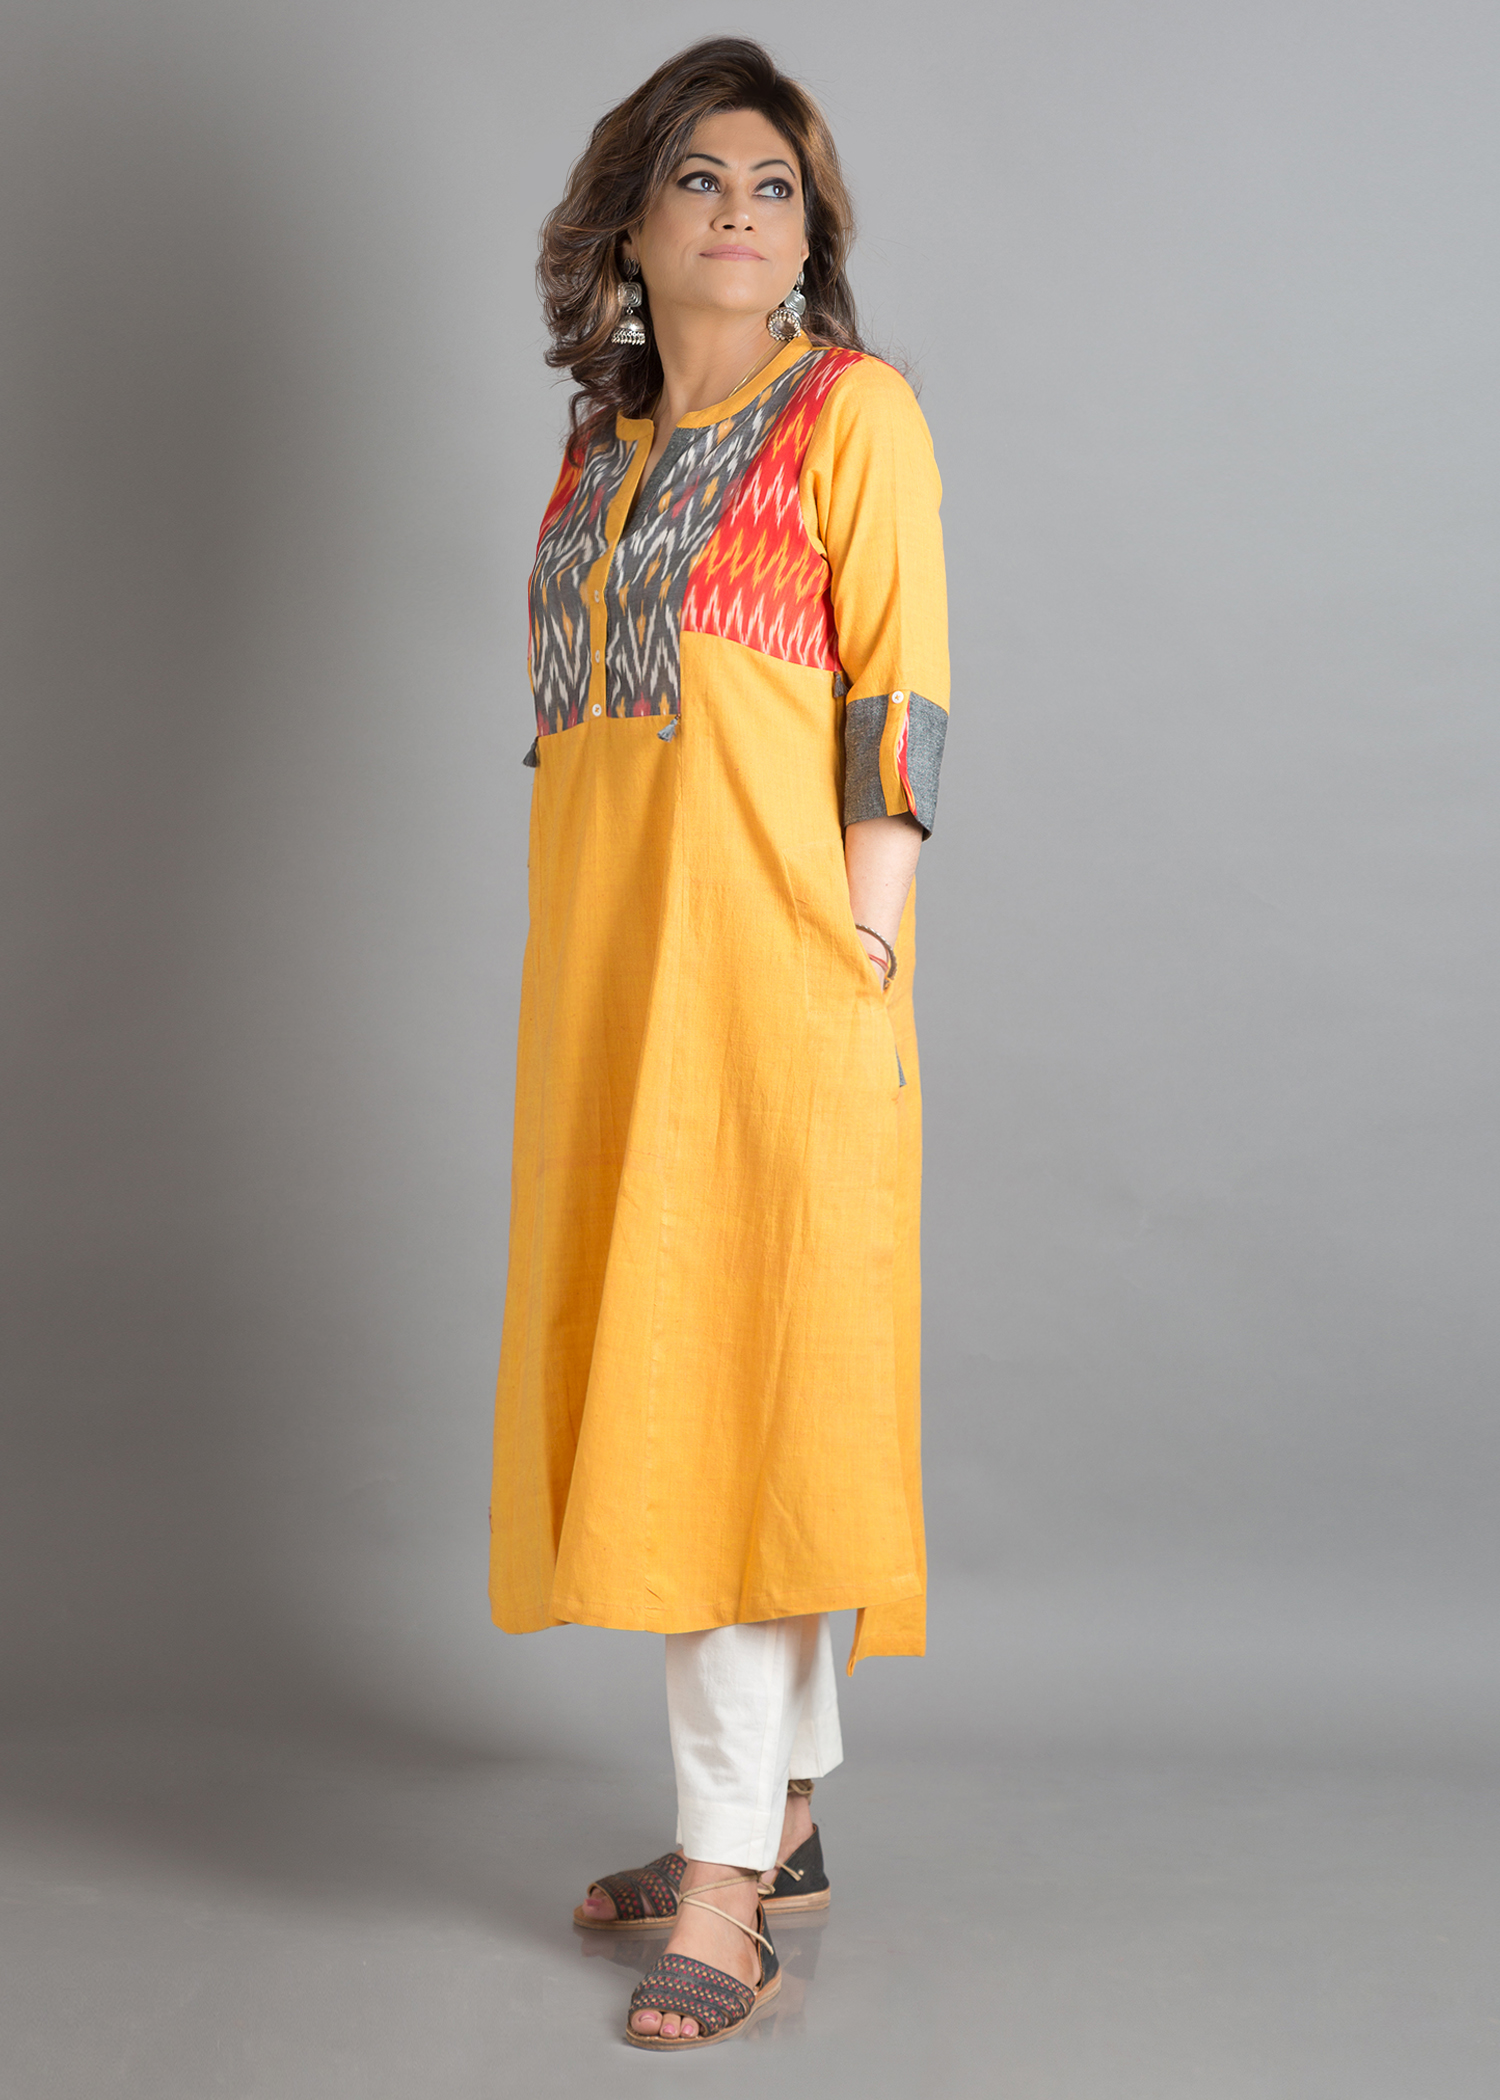 catalog/Feb 2018/yellow grey 2 kurta.jpg